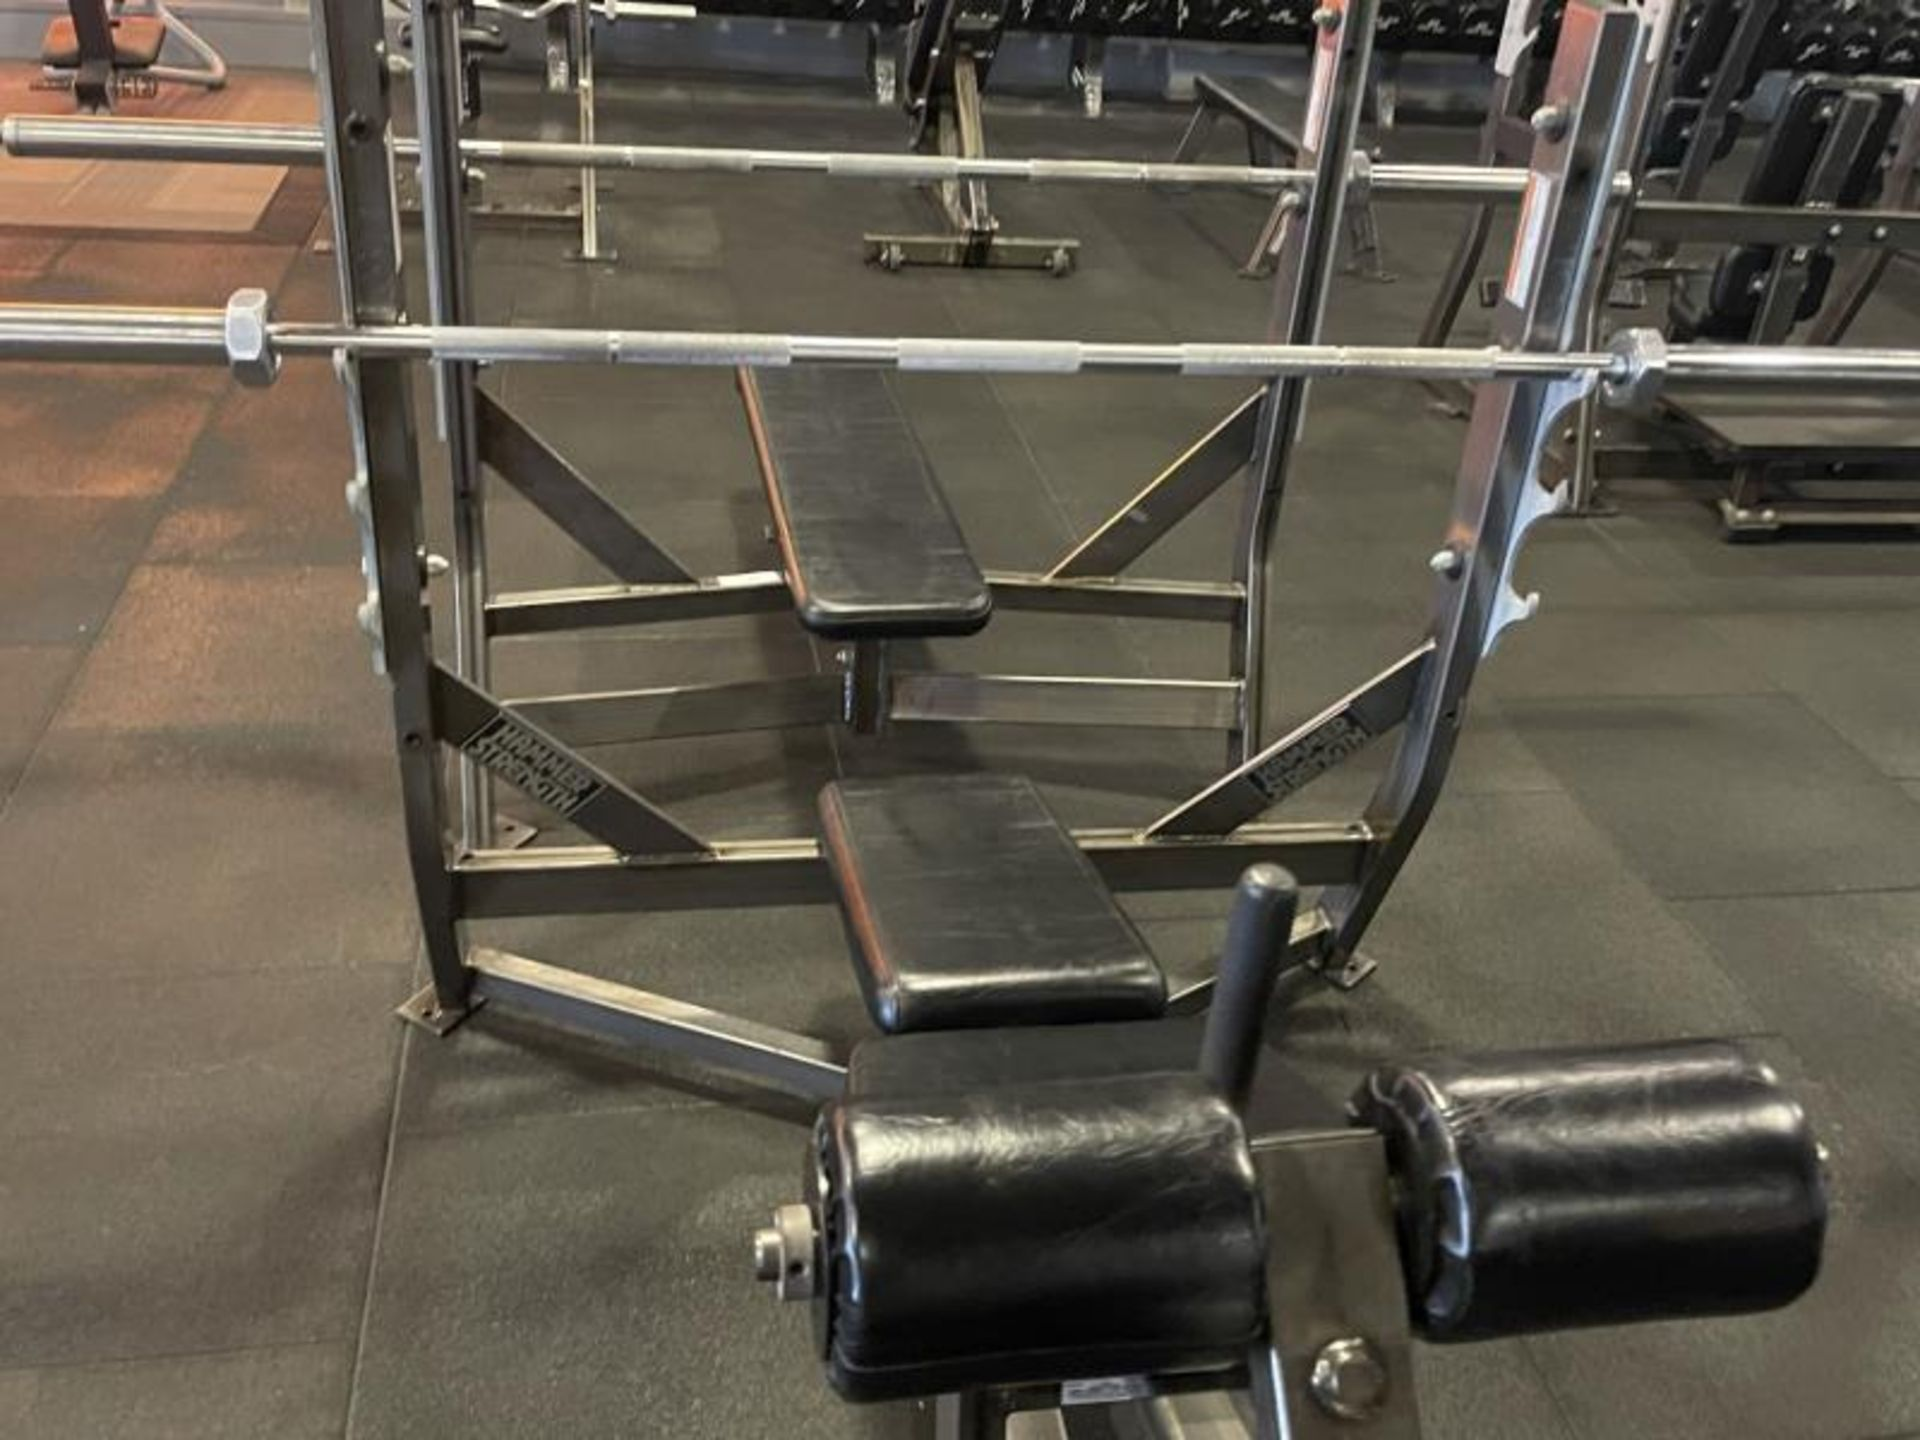 Hammer Strength Olympic Decline Bench with Bar ODB-A03 - Image 4 of 6